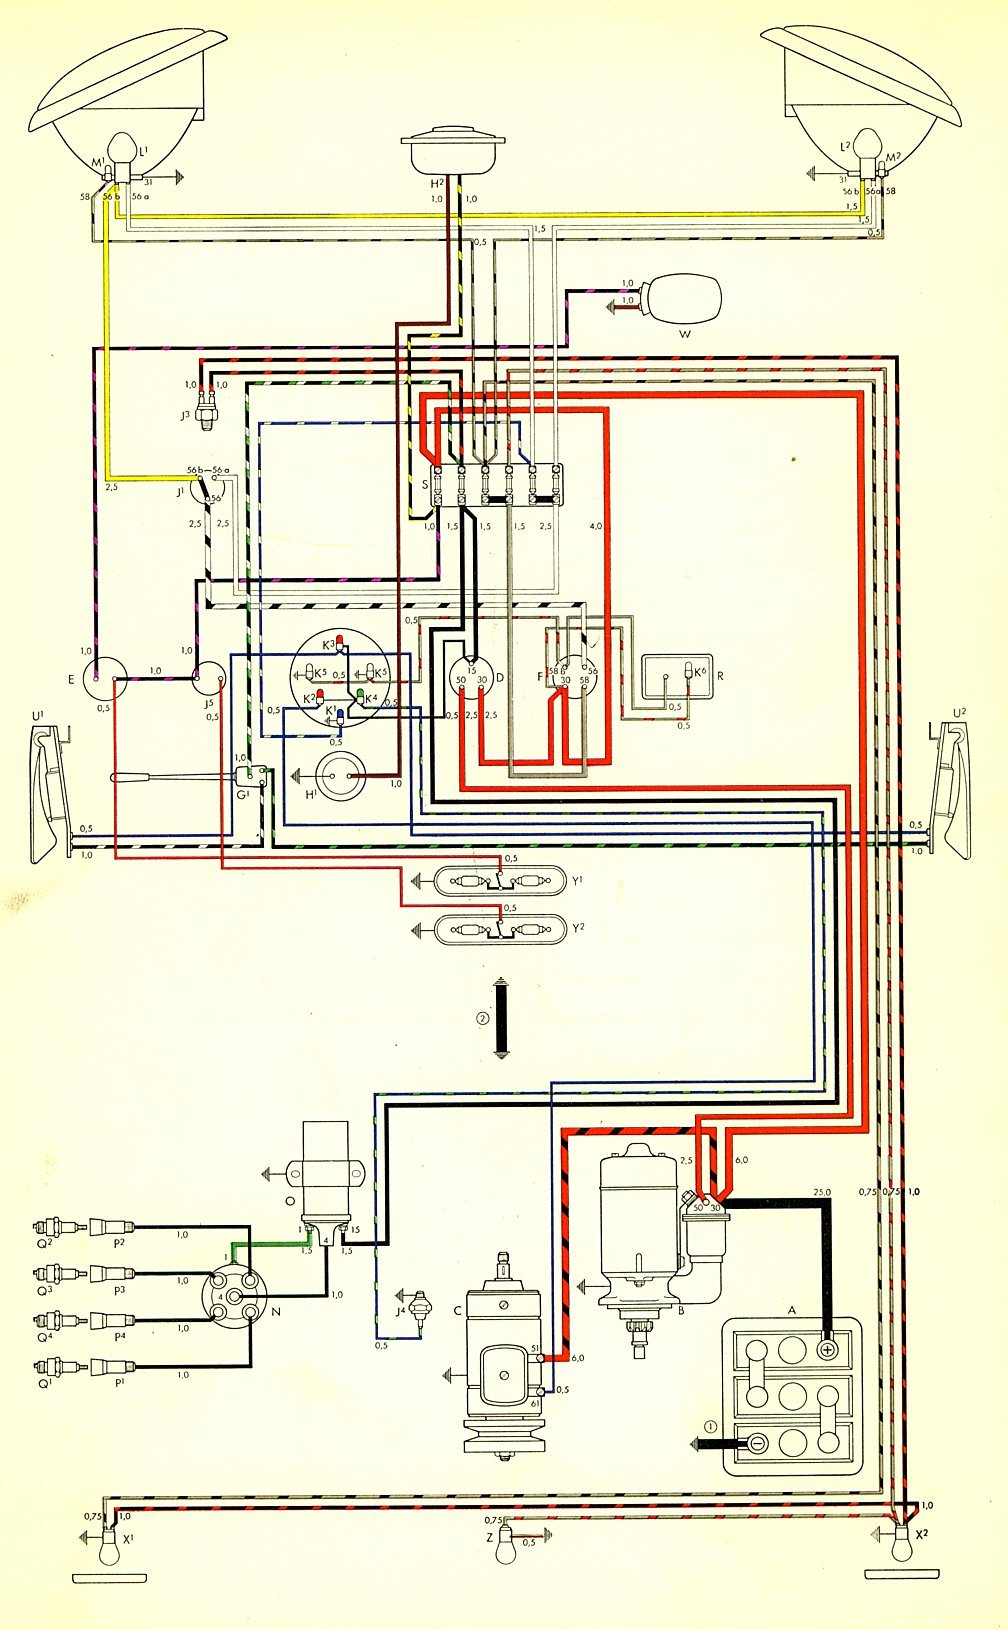 1976 Vw Transporter Wiring Diagram Great Installation Of Electric Generator Principle Thesamba Com Type 2 Diagrams Rh Beetle Electrical